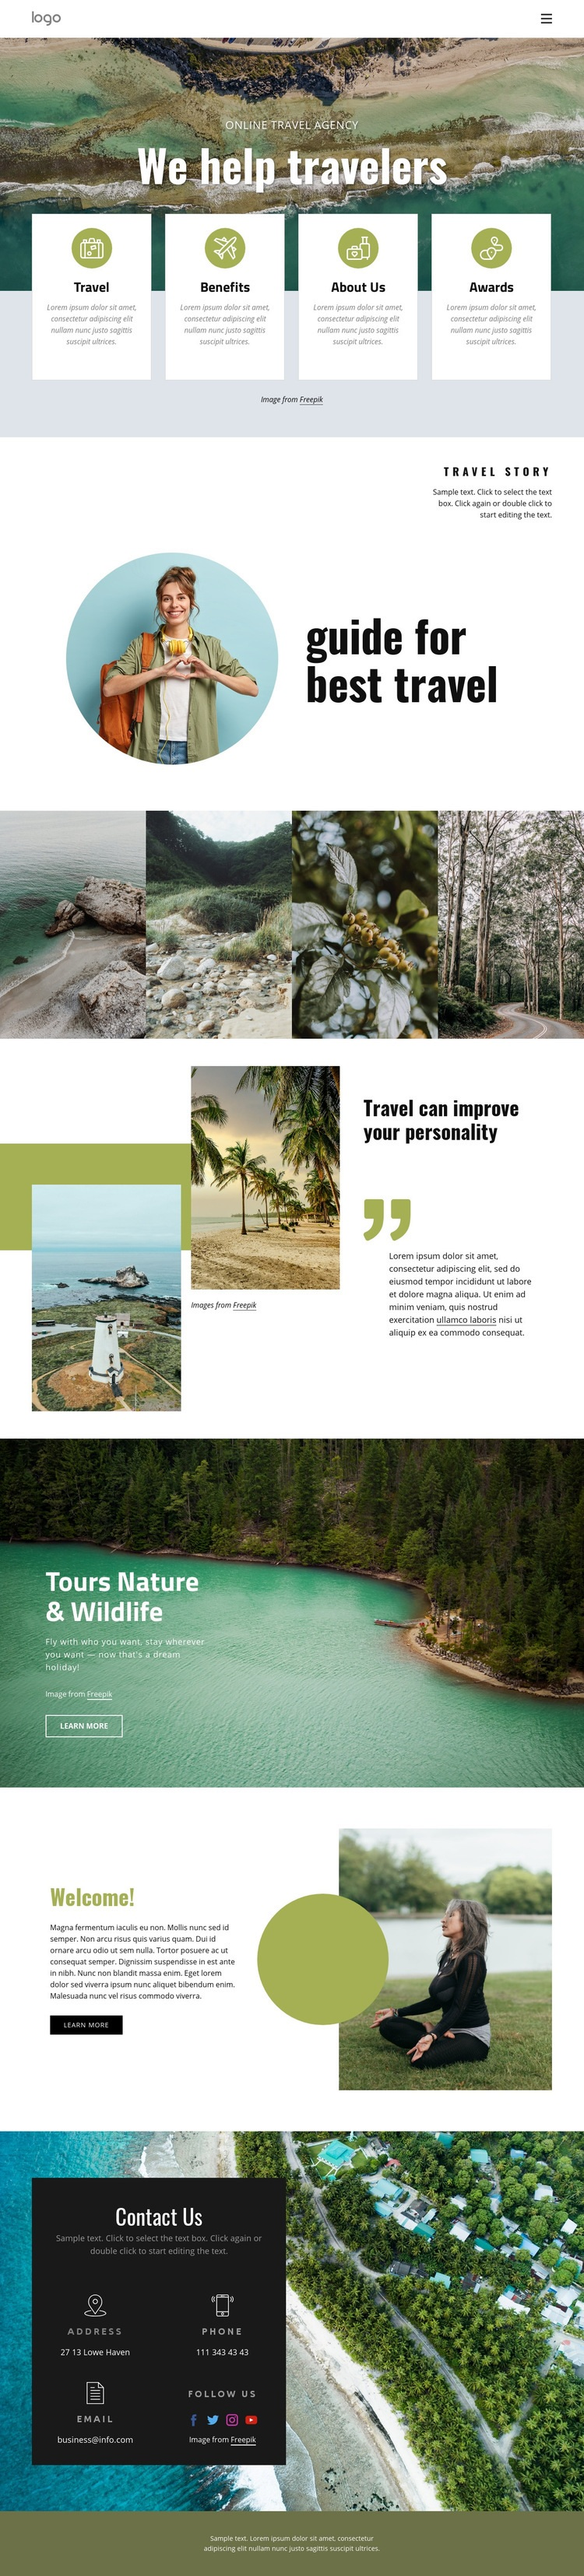 We help manage your trip Web Page Design